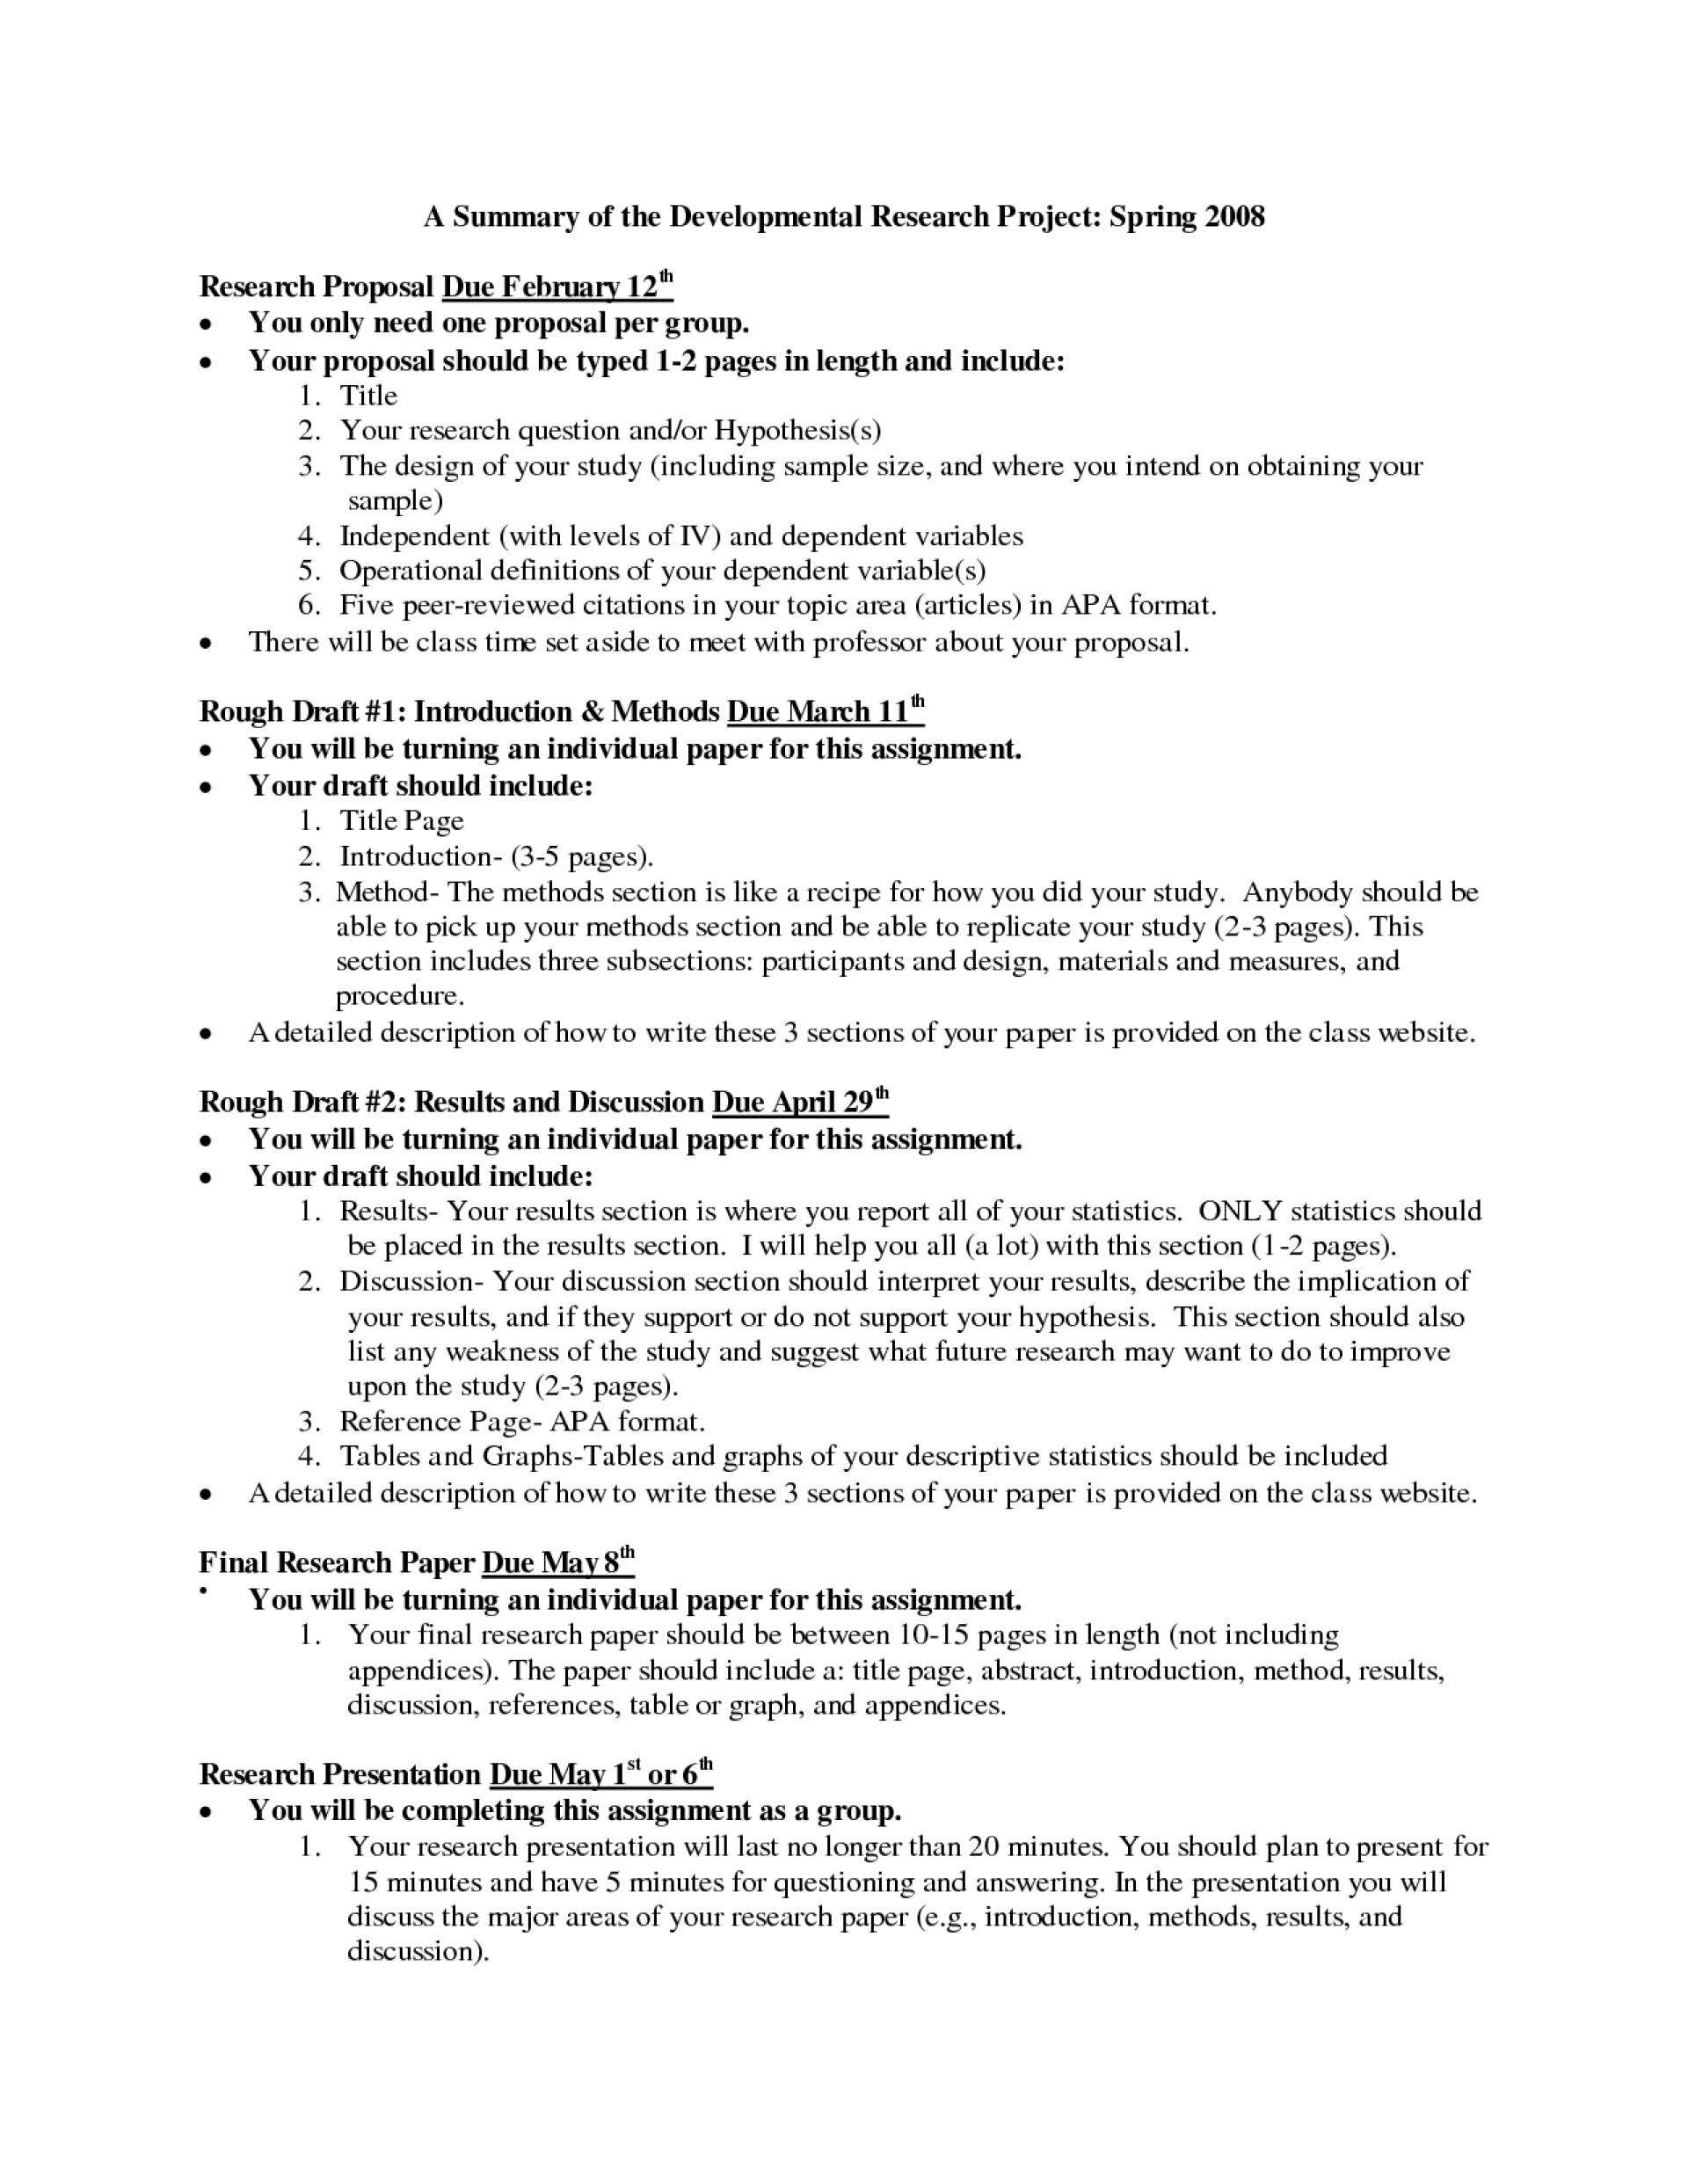 012 Good Research Paper Topic Psychology Undergraduate Resume Unique Sample Singular Topics About Music Persuasive 1920